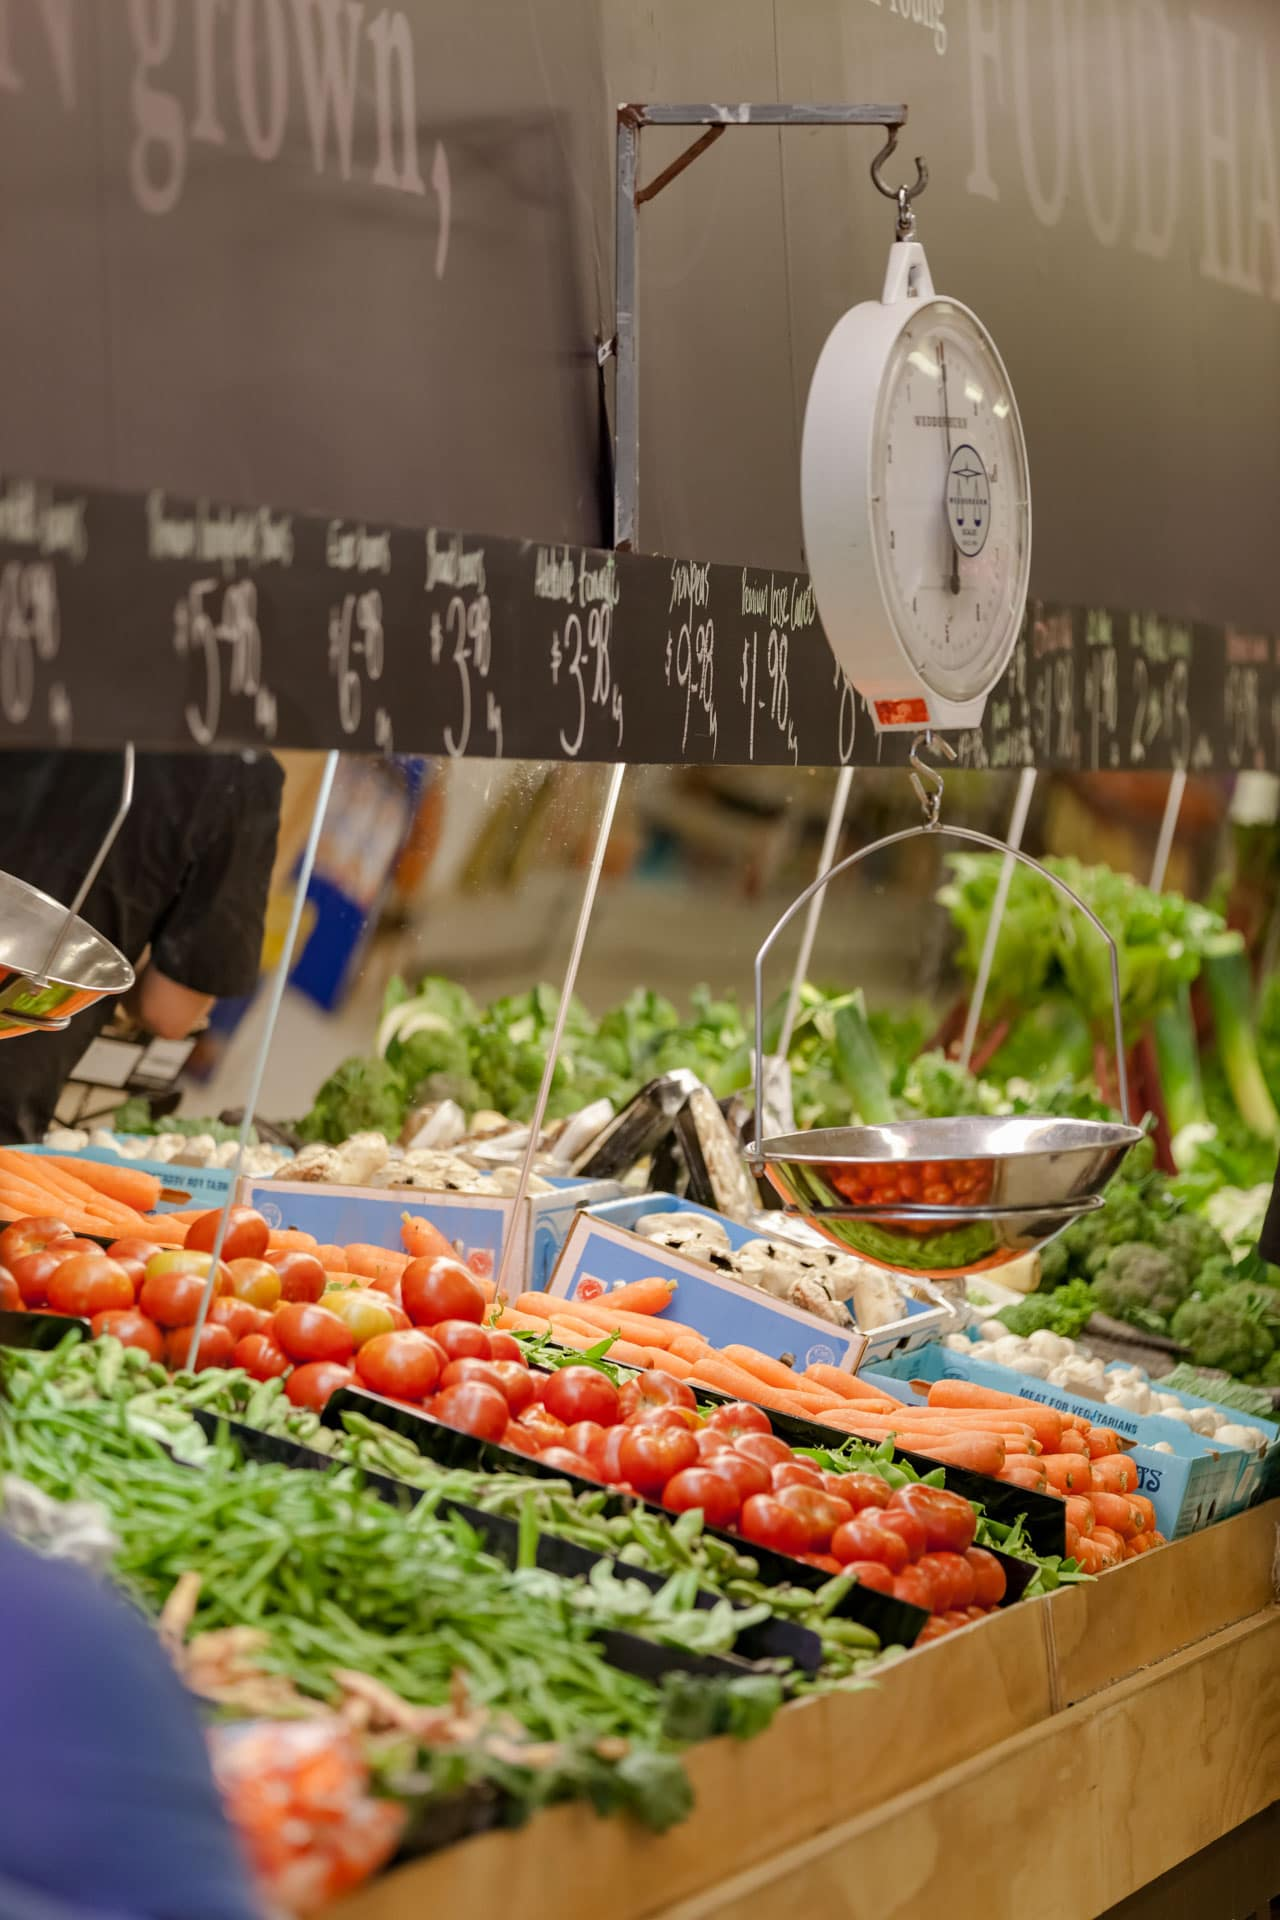 workplace photograph of fresh food business fresh on young store showing fruit and vegetables produce on display with weighing scales